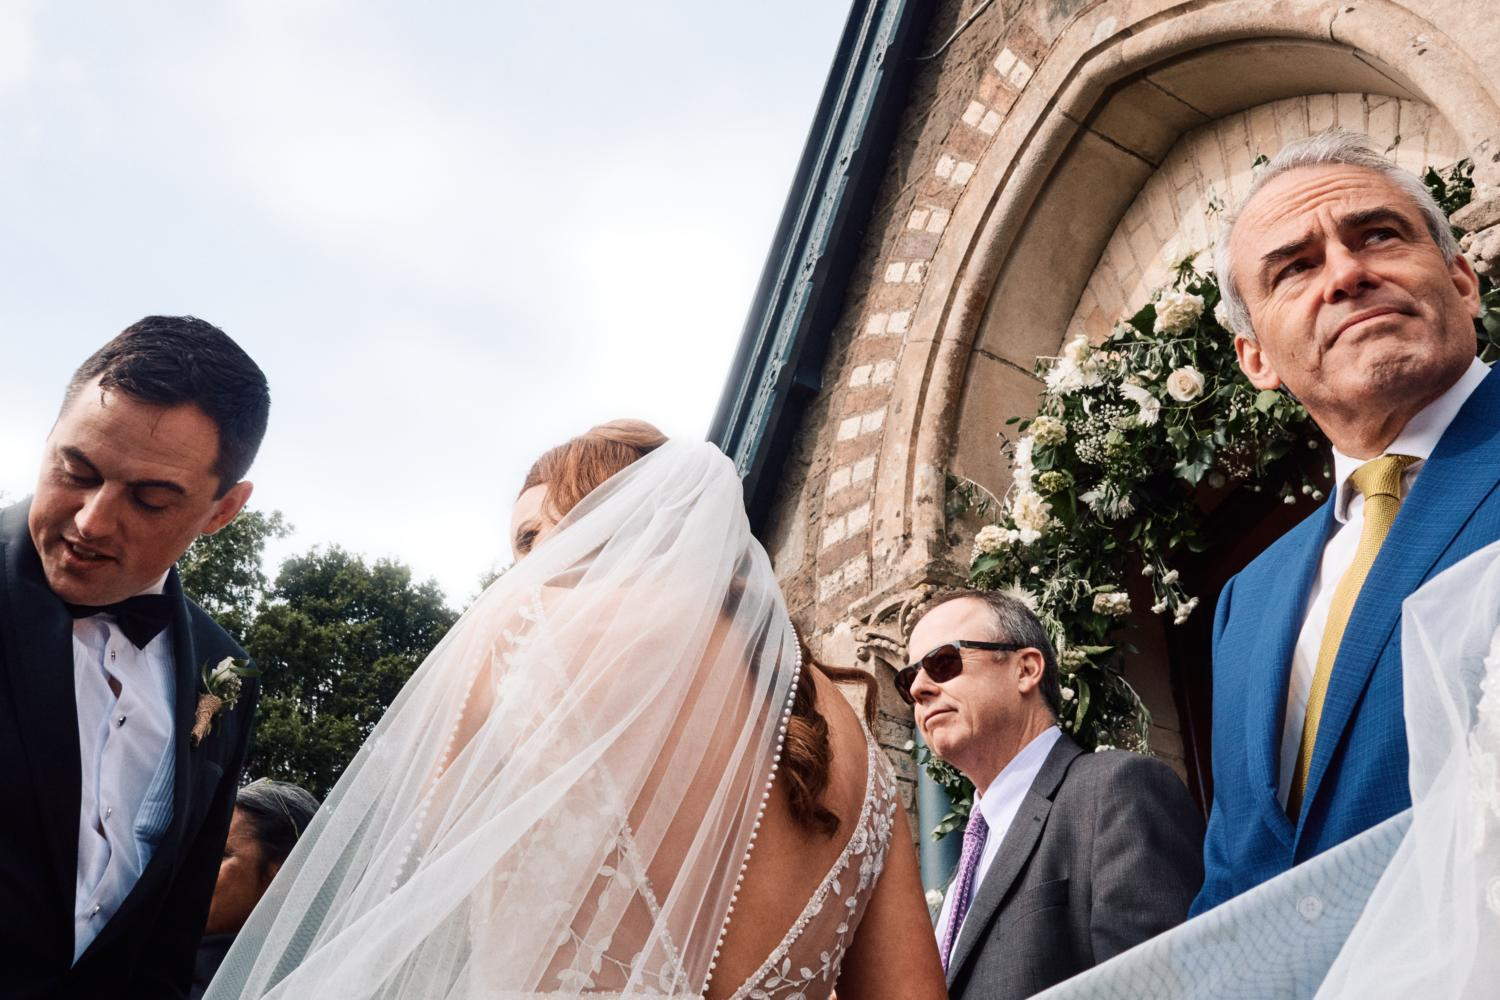 Wedding guests exit a chapel in Ireland